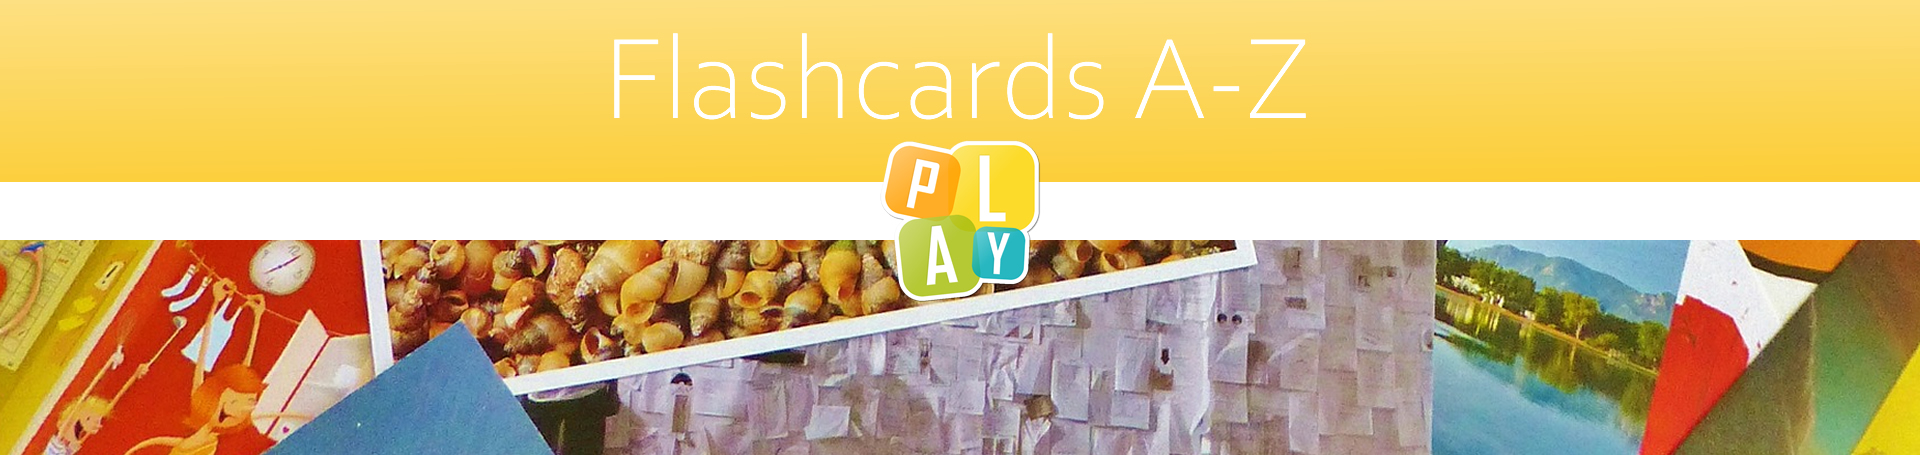 Header Flashcards A-Z